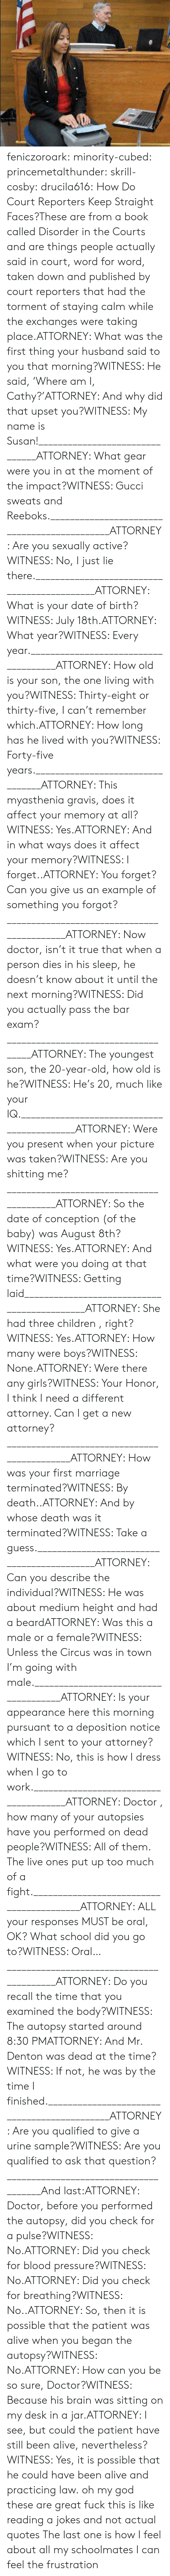 True That: feniczoroark:  minority-cubed:  princemetalthunder:  skrill-cosby:  drucila616:  How Do Court Reporters Keep Straight Faces?These are from a book called Disorder in the Courts and are things people actually said in court, word for word, taken down and published by court reporters that had the torment of staying calm while the exchanges were taking place.ATTORNEY: What was the first thing your husband said to you that morning?WITNESS: He said, 'Where am I, Cathy?'ATTORNEY: And why did that upset you?WITNESS: My name is Susan!_______________________________ATTORNEY: What gear were you in at the moment of the impact?WITNESS: Gucci sweats and Reeboks.____________________________________________ATTORNEY: Are you sexually active?WITNESS: No, I just lie there.____________________________________________ATTORNEY: What is your date of birth?WITNESS: July 18th.ATTORNEY: What year?WITNESS: Every year._____________________________________ATTORNEY: How old is your son, the one living with you?WITNESS: Thirty-eight or thirty-five, I can't remember which.ATTORNEY: How long has he lived with you?WITNESS: Forty-five years._________________________________ATTORNEY: This myasthenia gravis, does it affect your memory at all?WITNESS: Yes.ATTORNEY: And in what ways does it affect your memory?WITNESS: I forget..ATTORNEY: You forget? Can you give us an example of something you forgot?___________________________________________ATTORNEY: Now doctor, isn't it true that when a person dies in his sleep, he doesn't know about it until the next morning?WITNESS: Did you actually pass the bar exam?____________________________________ATTORNEY: The youngest son, the 20-year-old, how old is he?WITNESS: He's 20, much like your IQ.___________________________________________ATTORNEY: Were you present when your picture was taken?WITNESS: Are you shitting me?_________________________________________ATTORNEY: So the date of conception (of the baby) was August 8th?WITNESS: Yes.ATTORNEY: And what were you doing at that time?WITNESS: Getting laid____________________________________________ATTORNEY: She had three children , right?WITNESS: Yes.ATTORNEY: How many were boys?WITNESS: None.ATTORNEY: Were there any girls?WITNESS: Your Honor, I think I need a different attorney. Can I get a new attorney?____________________________________________ATTORNEY: How was your first marriage terminated?WITNESS: By death..ATTORNEY: And by whose death was it terminated?WITNESS: Take a guess.___________________________________________ATTORNEY: Can you describe the individual?WITNESS: He was about medium height and had a beardATTORNEY: Was this a male or a female?WITNESS: Unless the Circus was in town I'm going with male._____________________________________ATTORNEY: Is your appearance here this morning pursuant to a deposition notice which I sent to your attorney?WITNESS: No, this is how I dress when I go to work.______________________________________ATTORNEY: Doctor , how many of your autopsies have you performed on dead people?WITNESS: All of them. The live ones put up too much of a fight._________________________________________ATTORNEY: ALL your responses MUST be oral, OK? What school did you go to?WITNESS: Oral…_________________________________________ATTORNEY: Do you recall the time that you examined the body?WITNESS: The autopsy started around 8:30 PMATTORNEY: And Mr. Denton was dead at the time?WITNESS: If not, he was by the time I finished.____________________________________________ATTORNEY: Are you qualified to give a urine sample?WITNESS: Are you qualified to ask that question?______________________________________And last:ATTORNEY: Doctor, before you performed the autopsy, did you check for a pulse?WITNESS: No.ATTORNEY: Did you check for blood pressure?WITNESS: No.ATTORNEY: Did you check for breathing?WITNESS: No..ATTORNEY: So, then it is possible that the patient was alive when you began the autopsy?WITNESS: No.ATTORNEY: How can you be so sure, Doctor?WITNESS: Because his brain was sitting on my desk in a jar.ATTORNEY: I see, but could the patient have still been alive, nevertheless?WITNESS: Yes, it is possible that he could have been alive and practicing law.  oh my god these are great  fuck this is like reading a jokes and not actual quotes   The last one is how I feel about all my schoolmates  I can feel the frustration